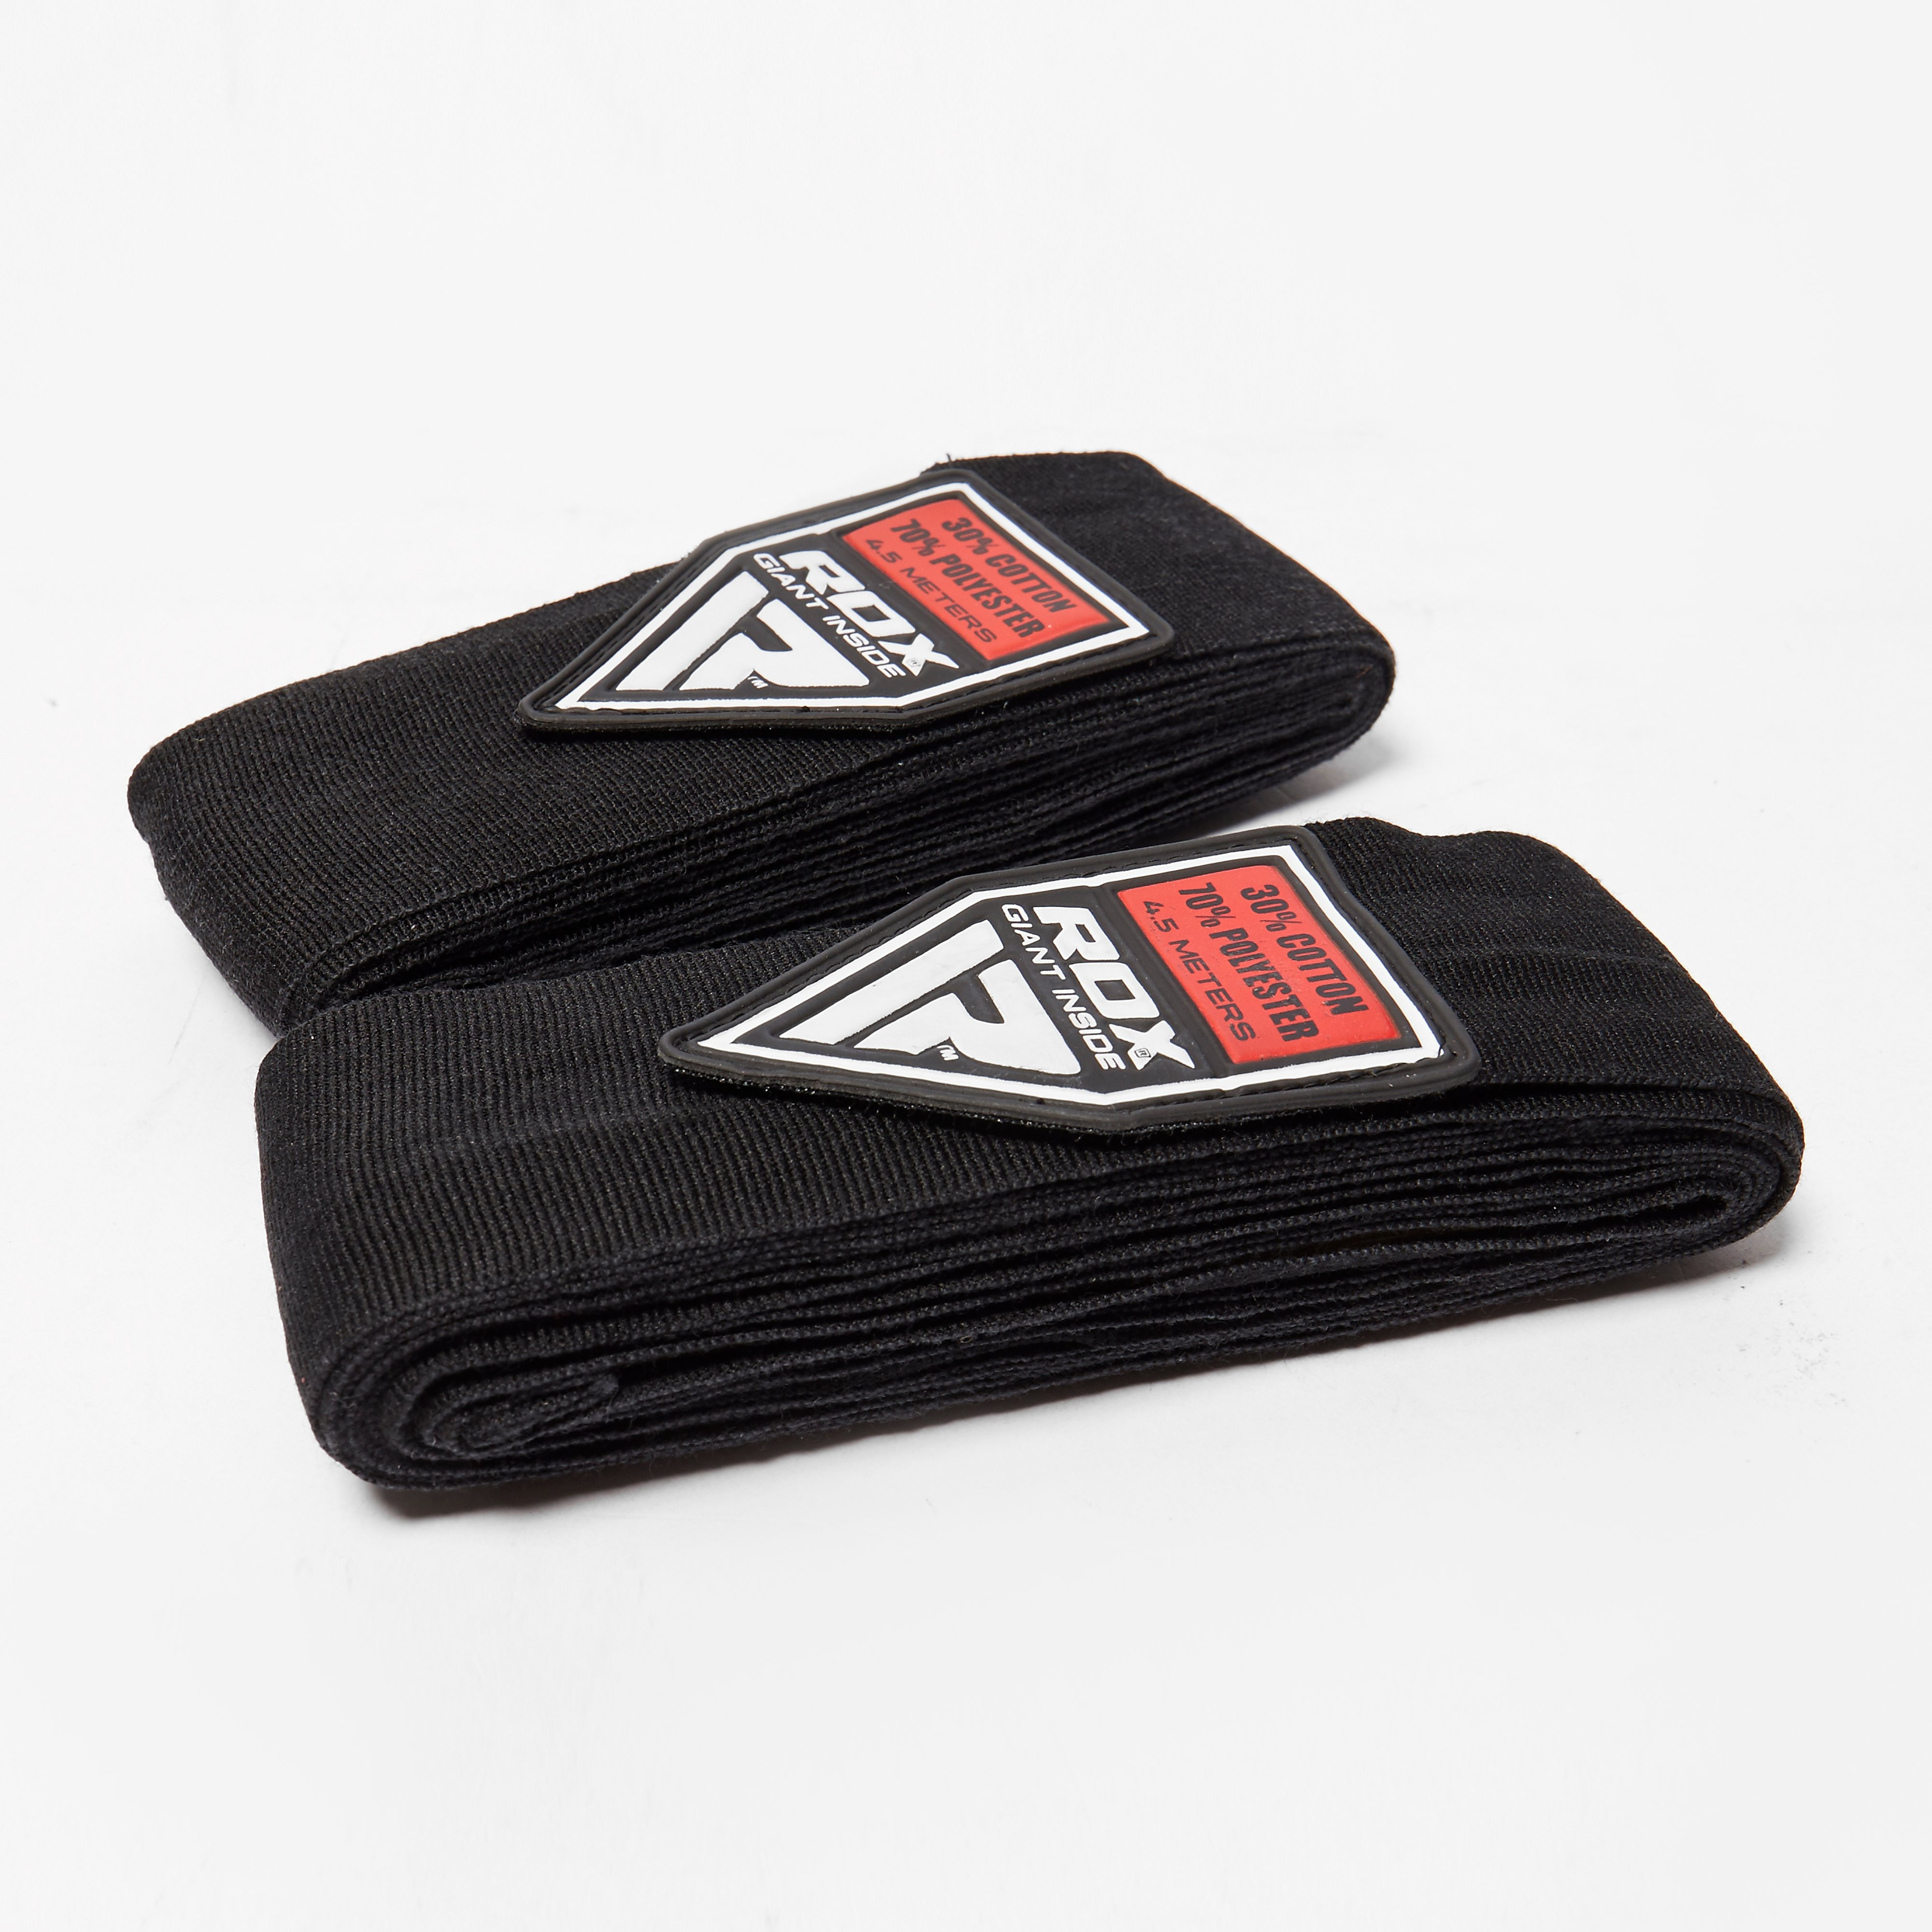 Rdx inc Hand Wraps Fist Inner Gloves Bandages